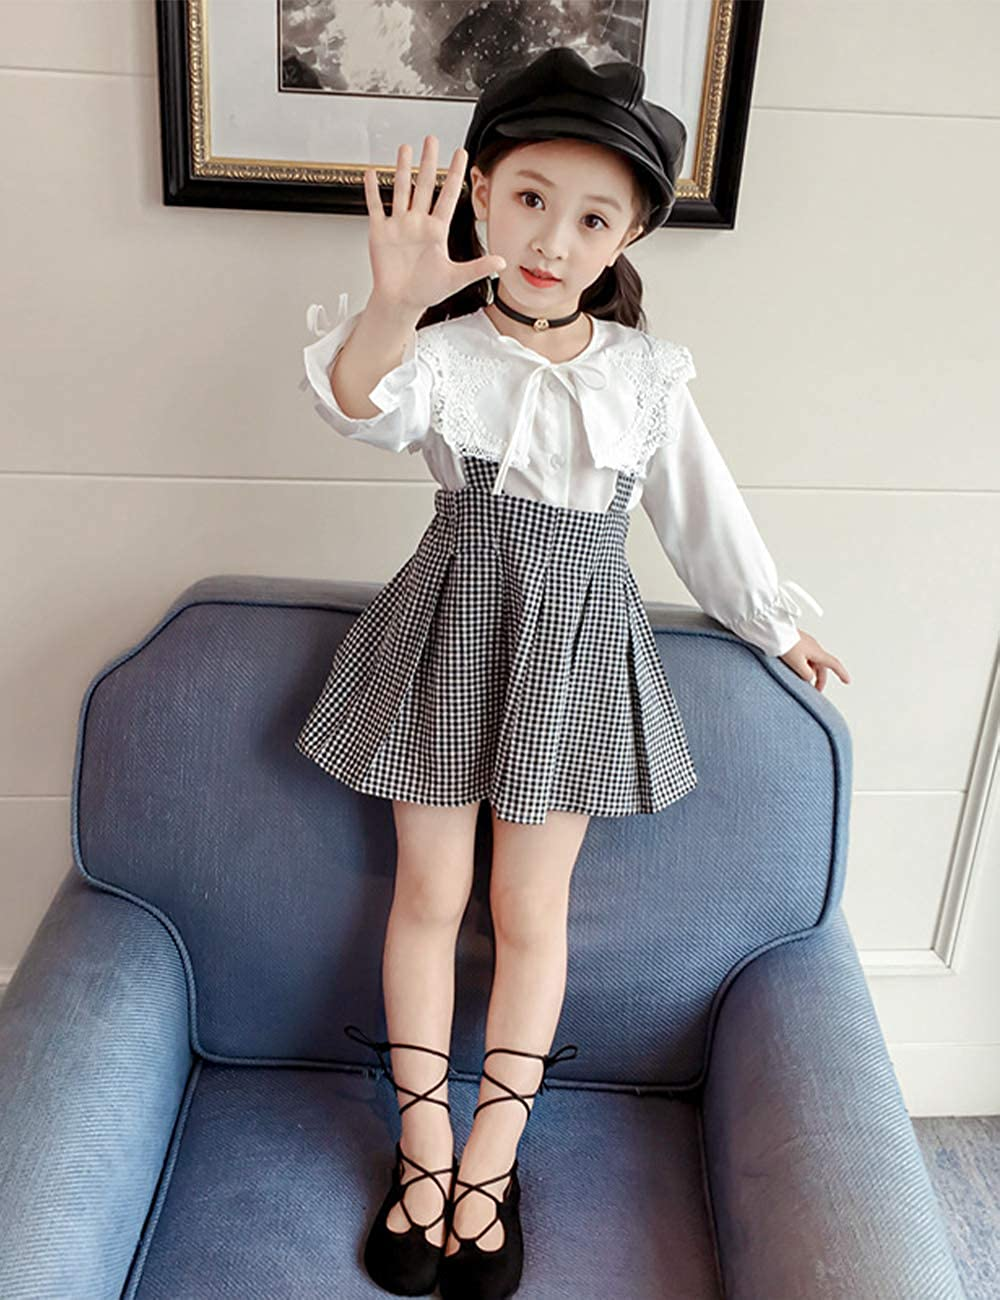 87d41ca73 Amazon.com: Toddler Kid Girl Outfit Long Sleeve Lotus Leaf Lace T-Shirt + Plaid  Strap Overall Dress Suspender Skirt Set for 1-6T: Clothing